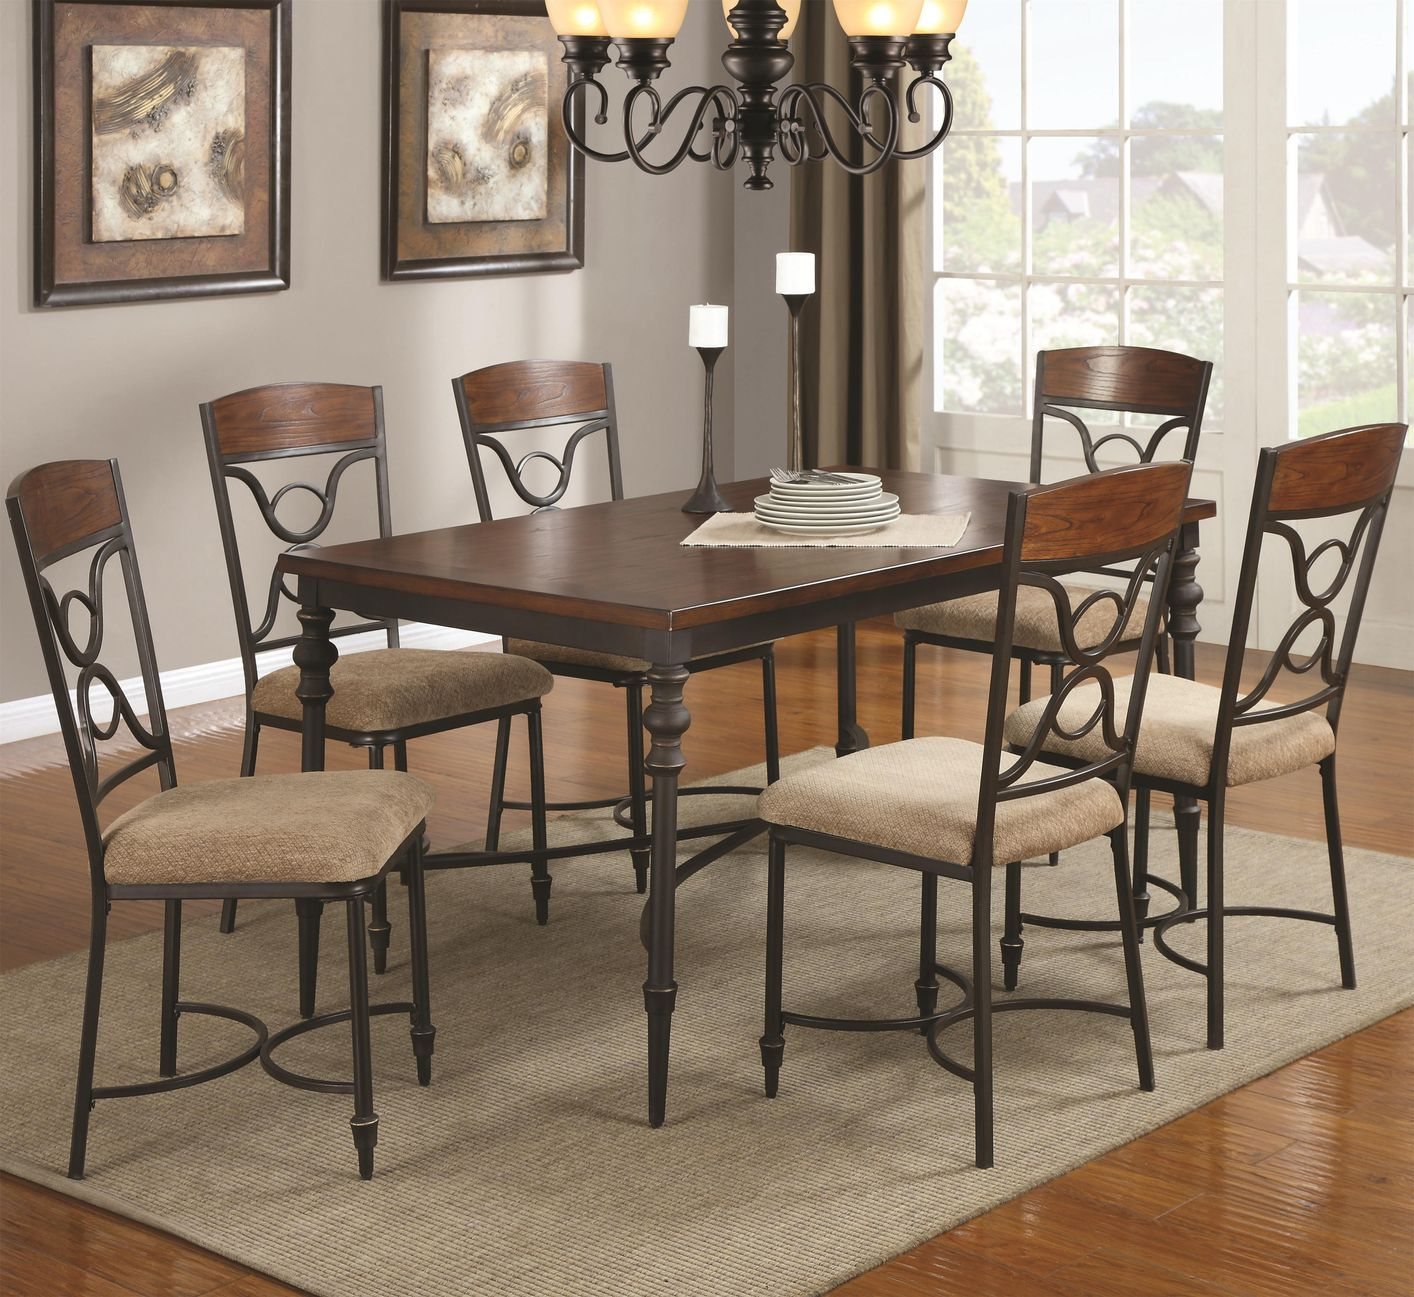 Brown Metal And Wood Dining Table Set Los Angeles Dark Room Nice With Image Remodelling New